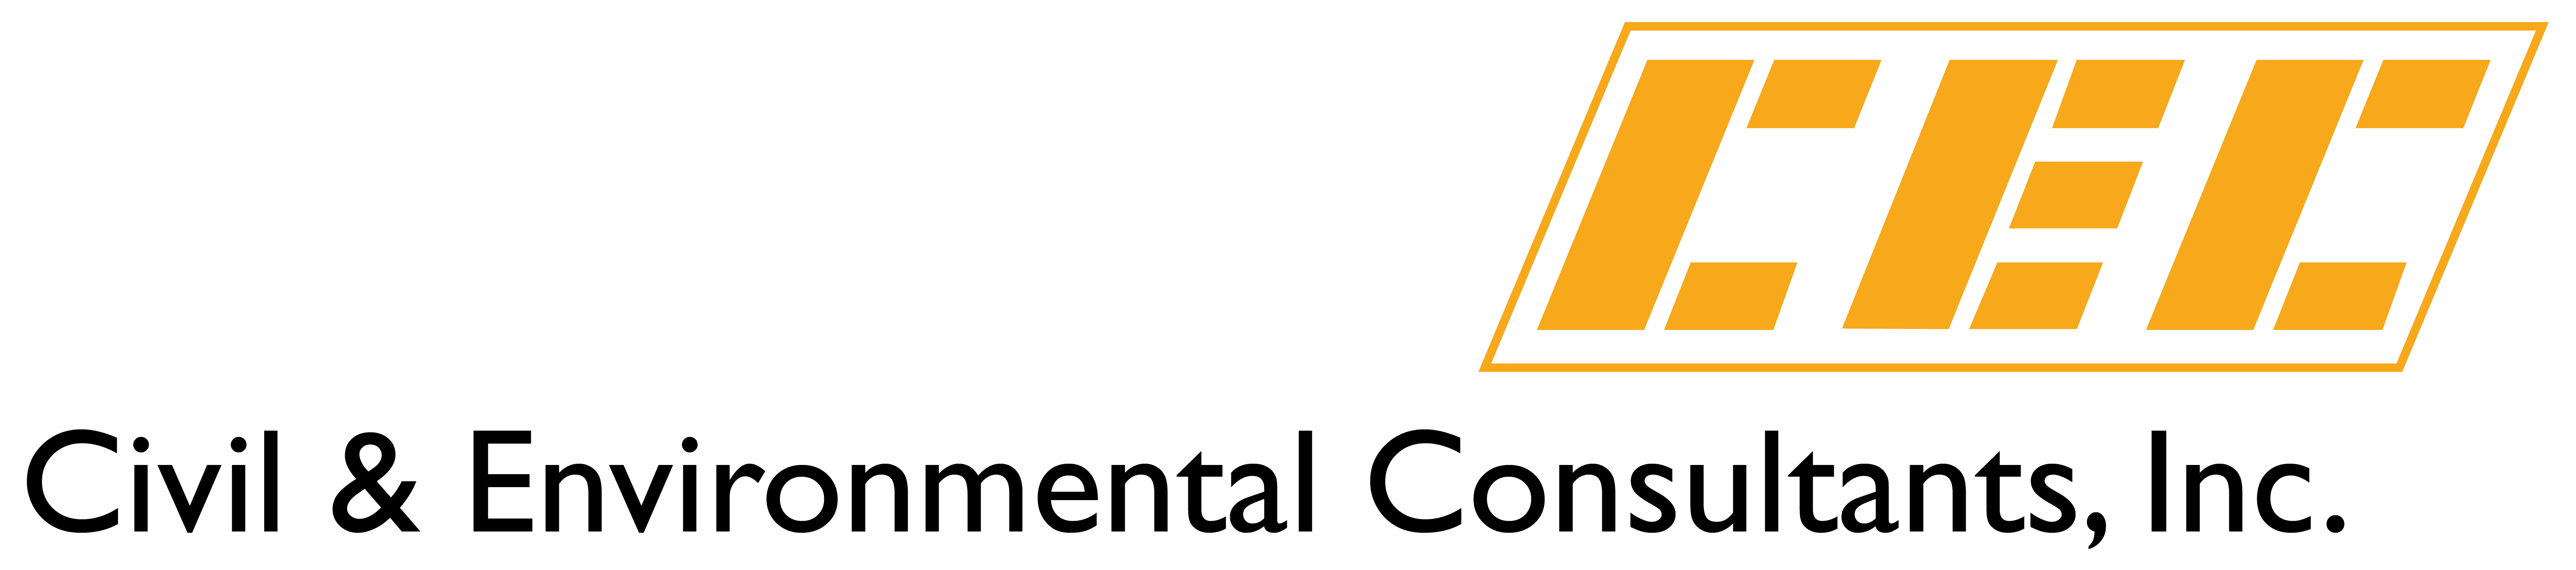 CEC: Civil & Environmental Consultants, Inc. (http://www.cecinc.com)